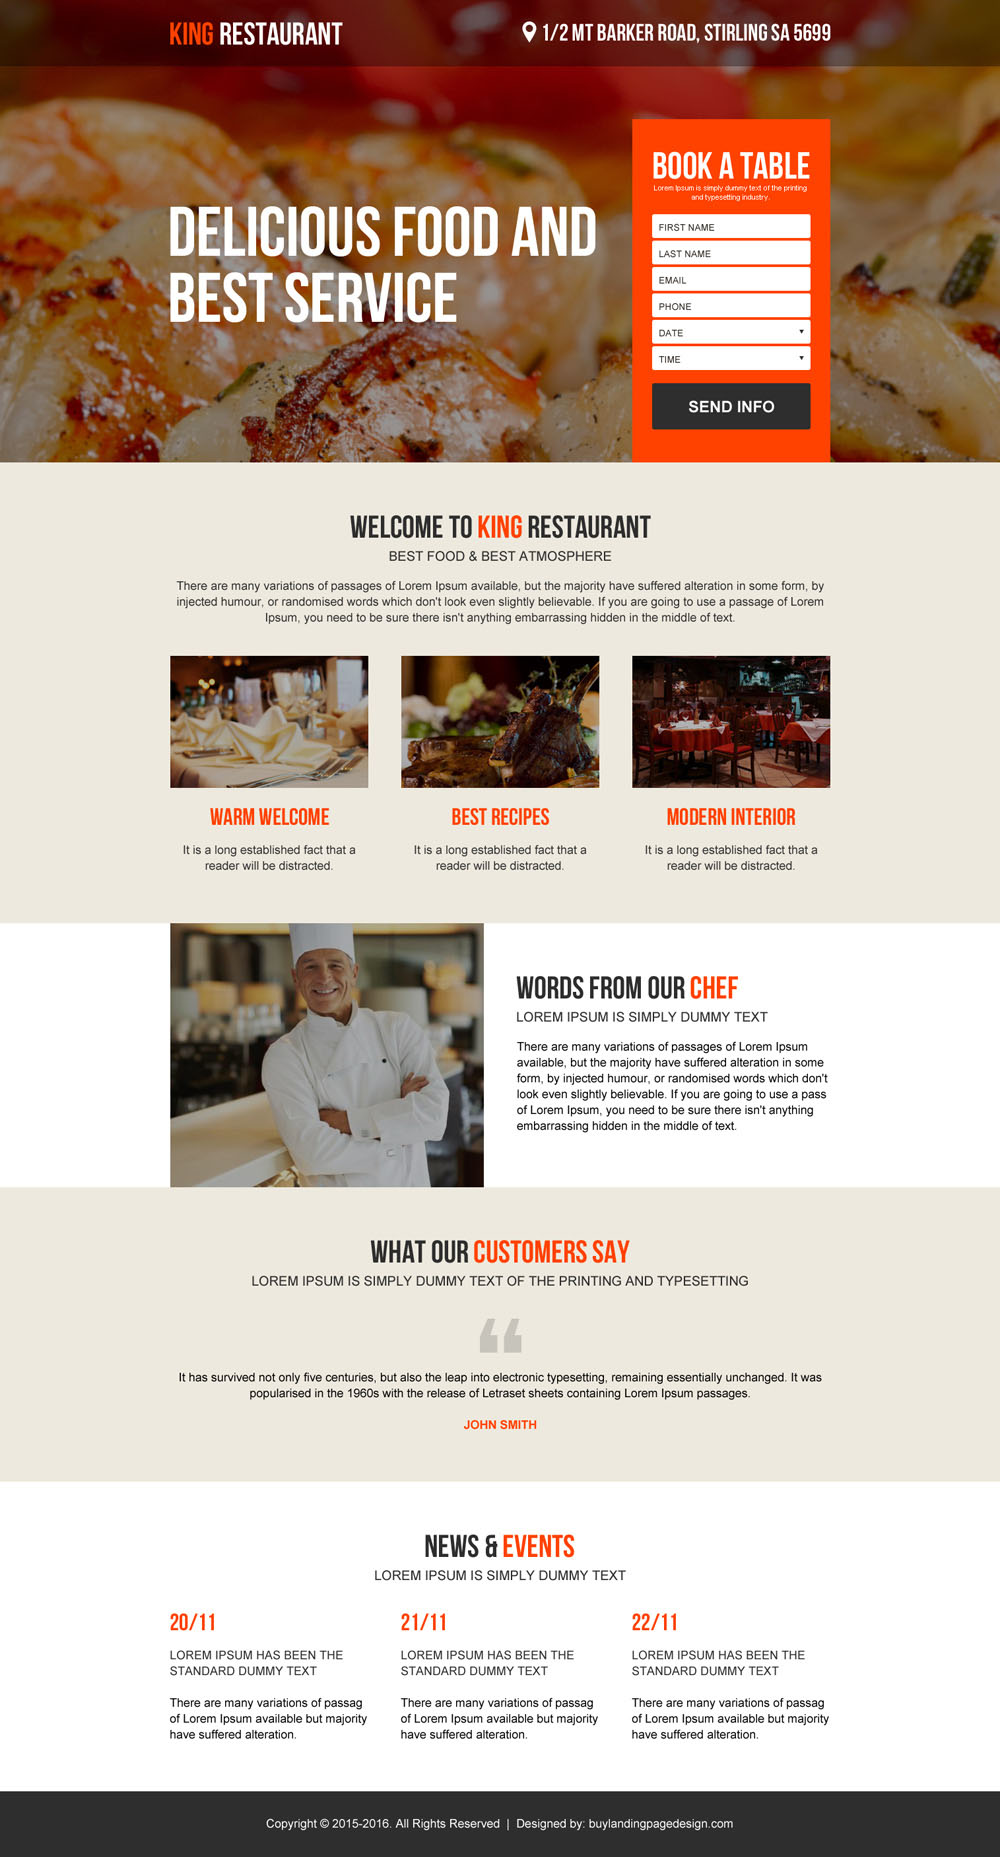 book-a-table-on-restaurant-lead-capture-landing-page-design-004